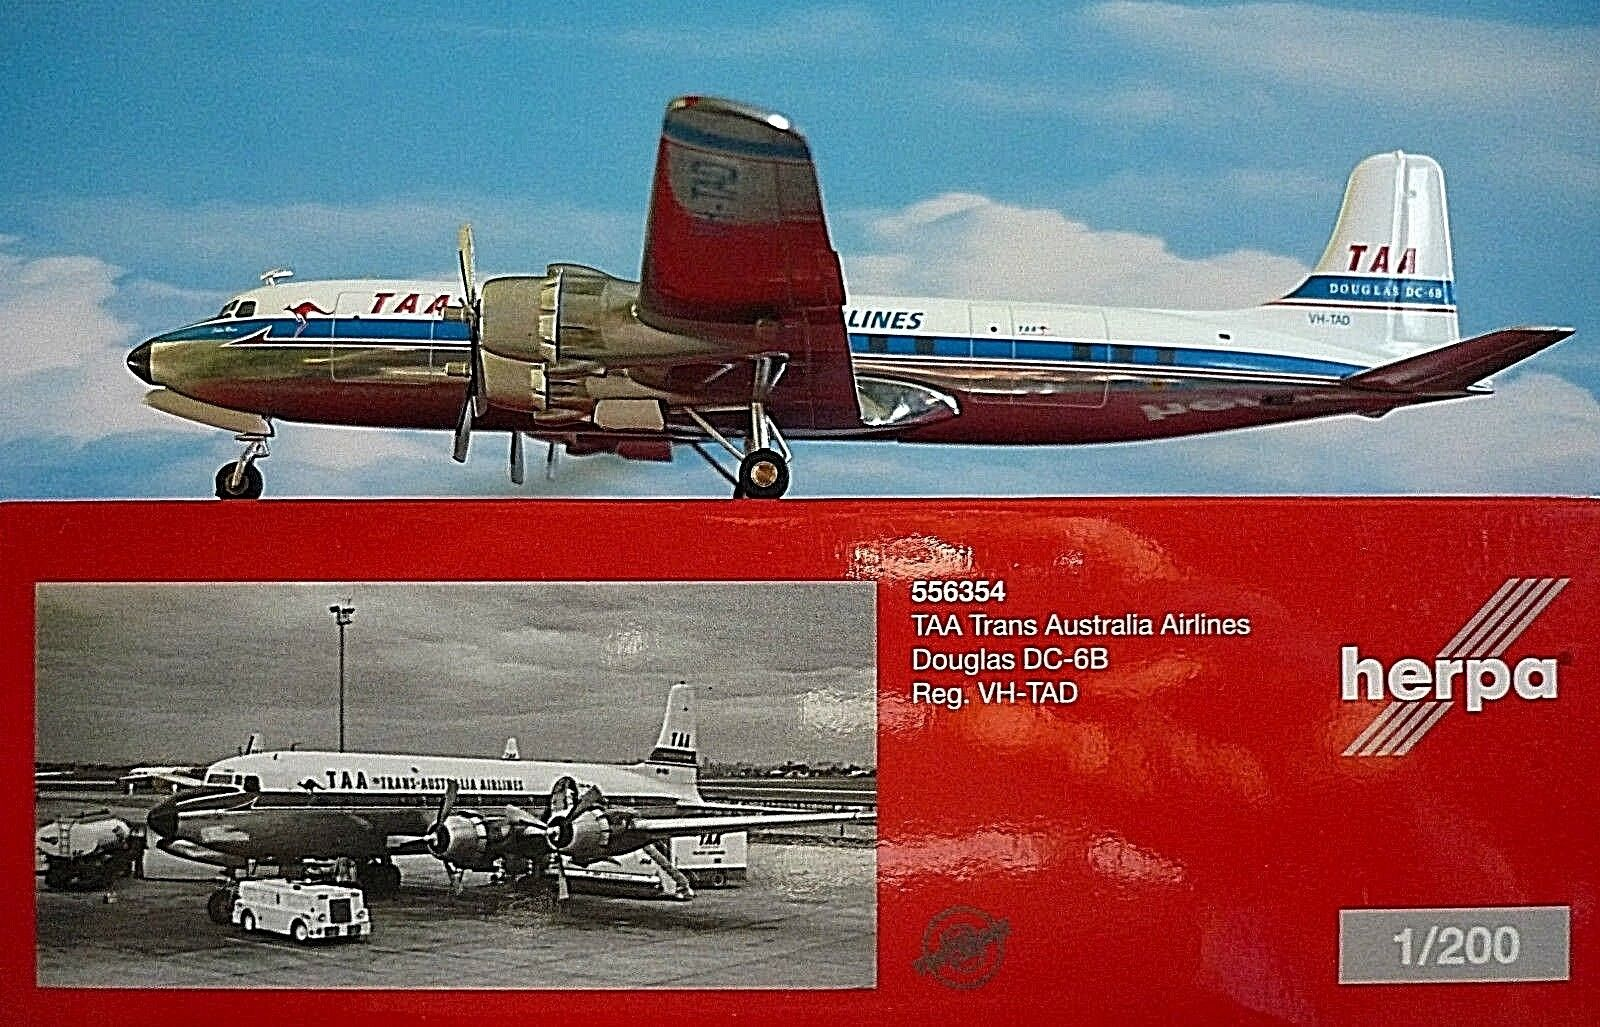 Herpa Wings 1 200 Douglas DC-6B TAA Trans Australia Airlines VH-TAD 556354